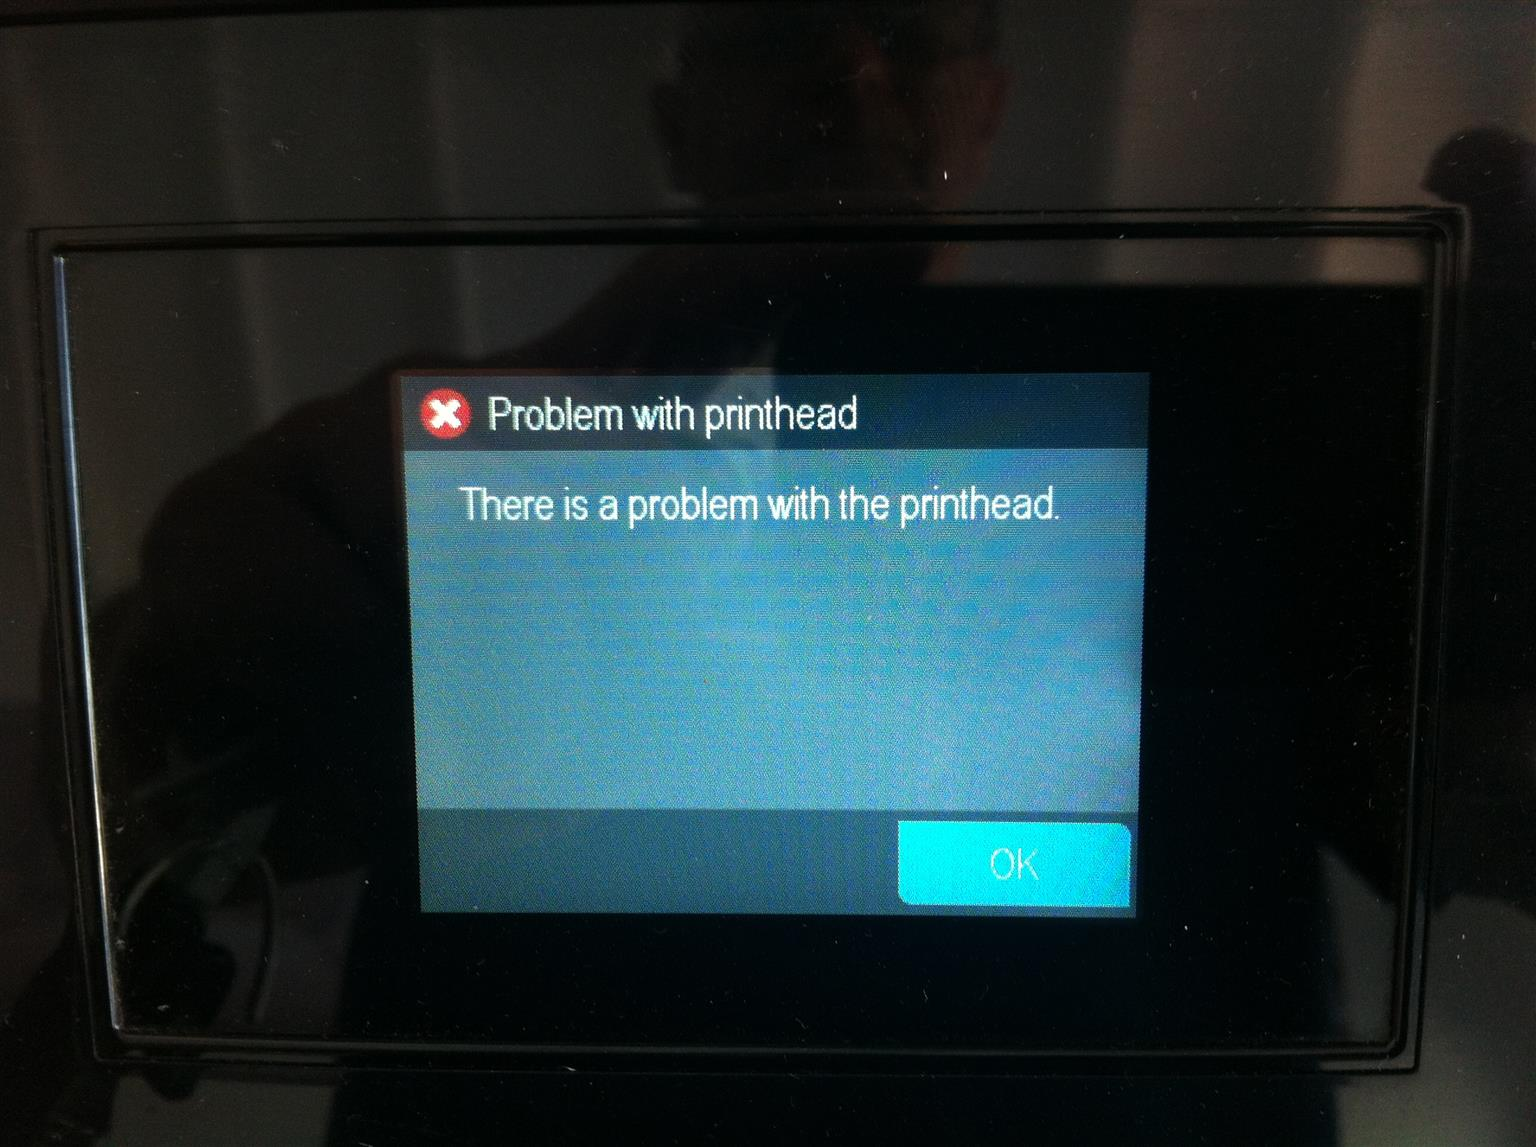 Hp Officejet 7510 Wideformat A3 printer printhead error